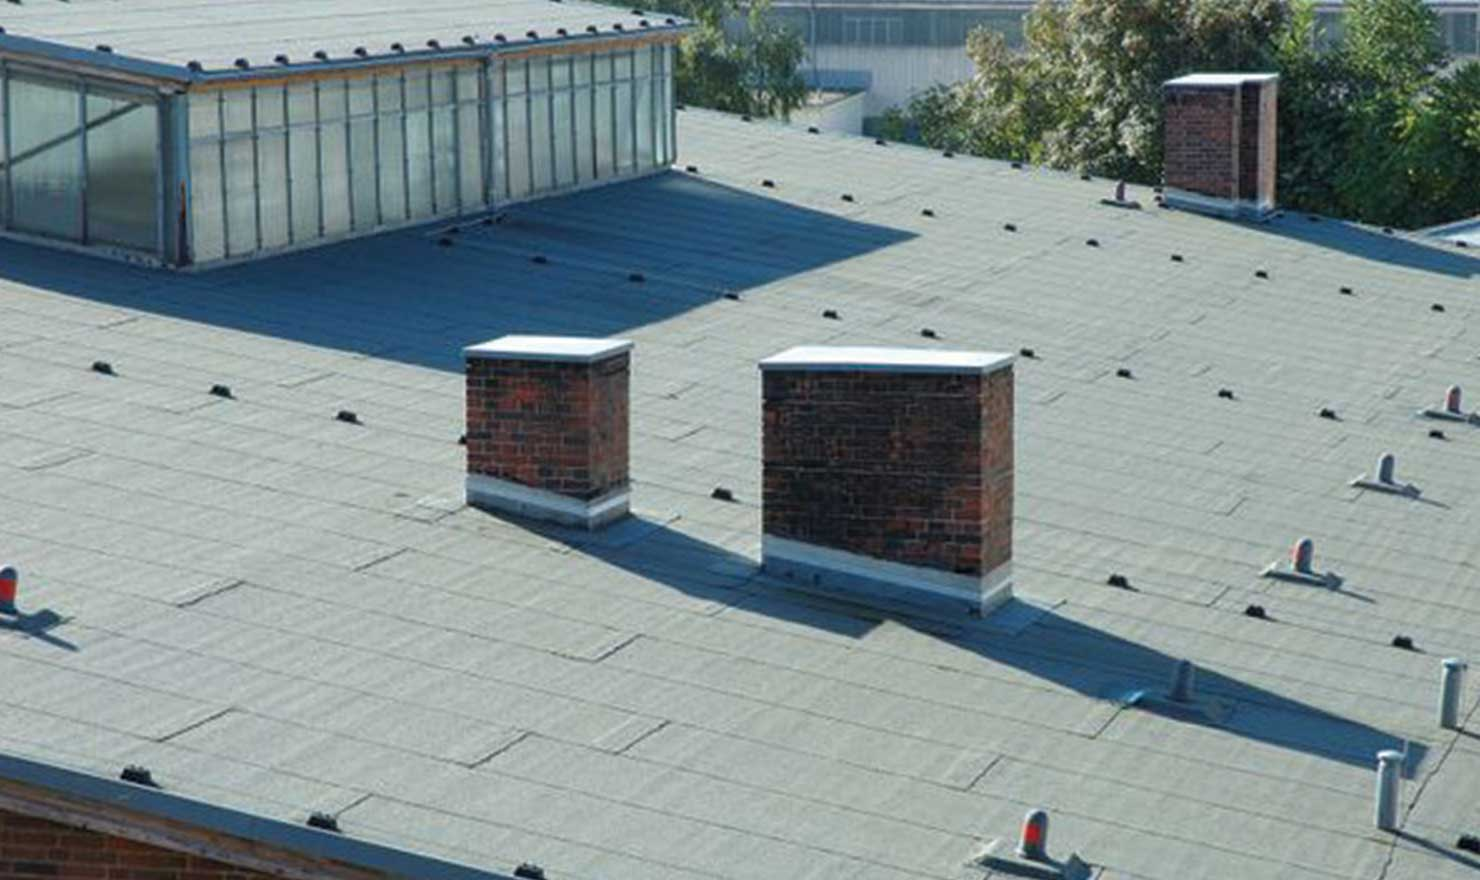 Industrial roof installation in Edmonton by MD Roofing - imaged of slopped industrial roofing